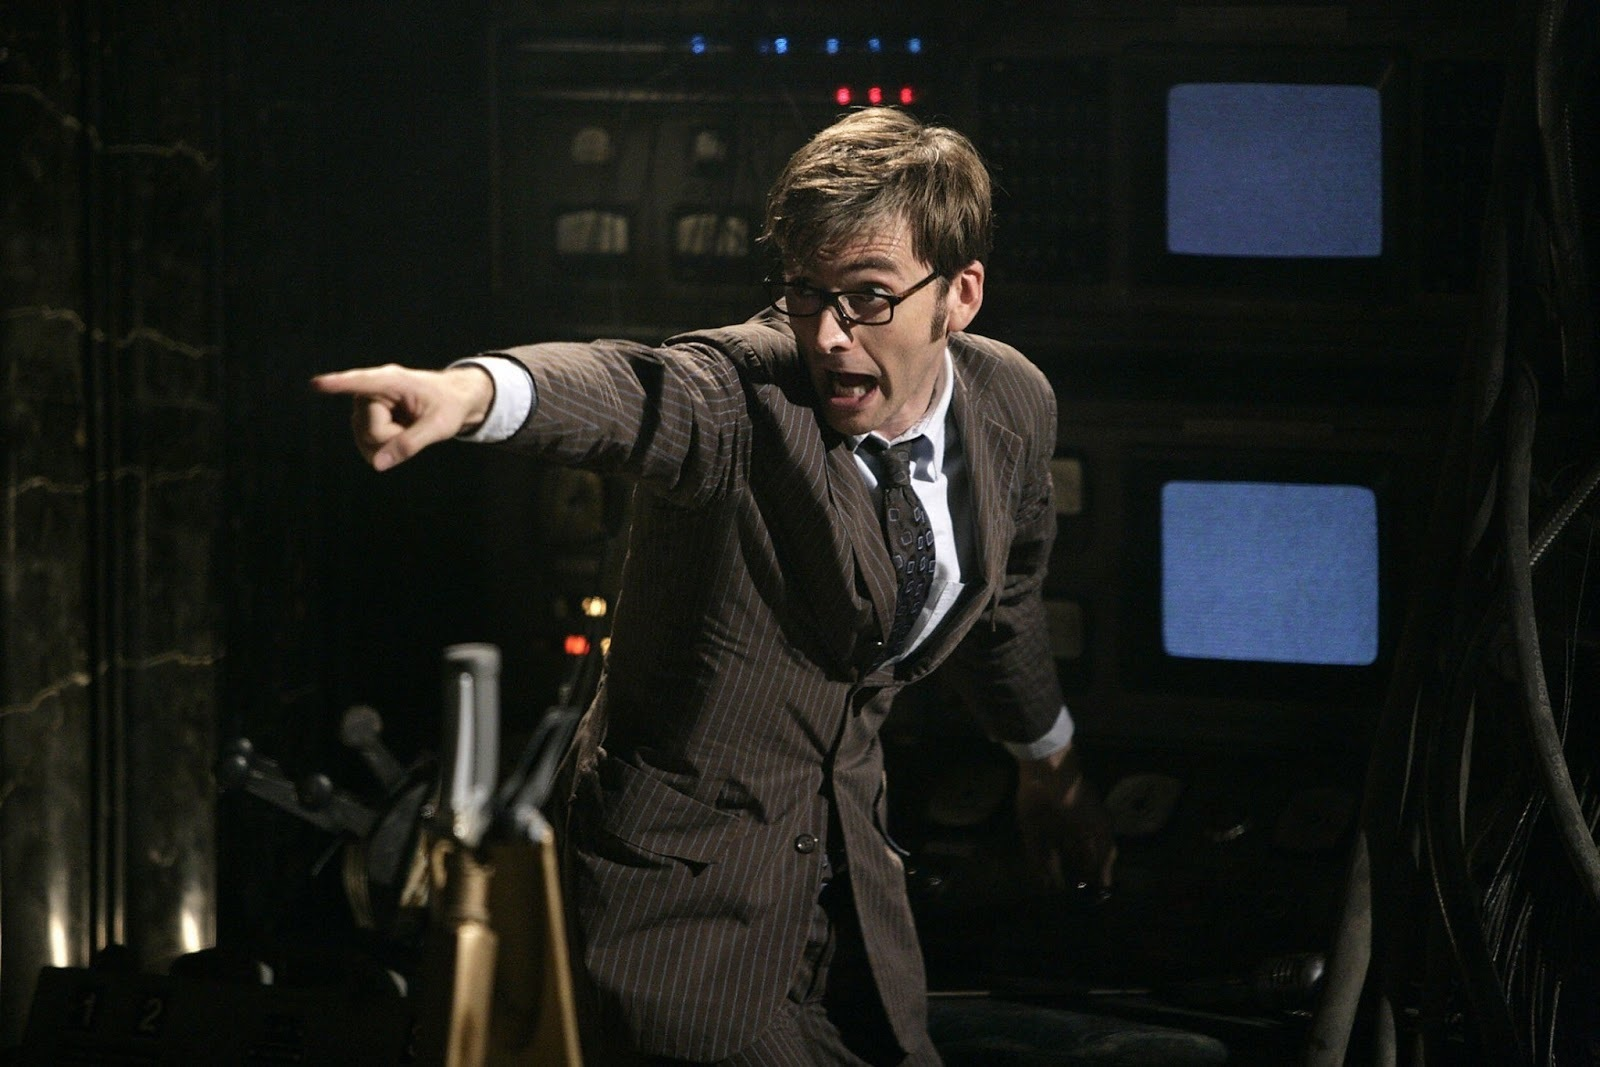 New Earth/ Gridlock Will be Penultimate Doctor Who Watch-Along During Lockdown